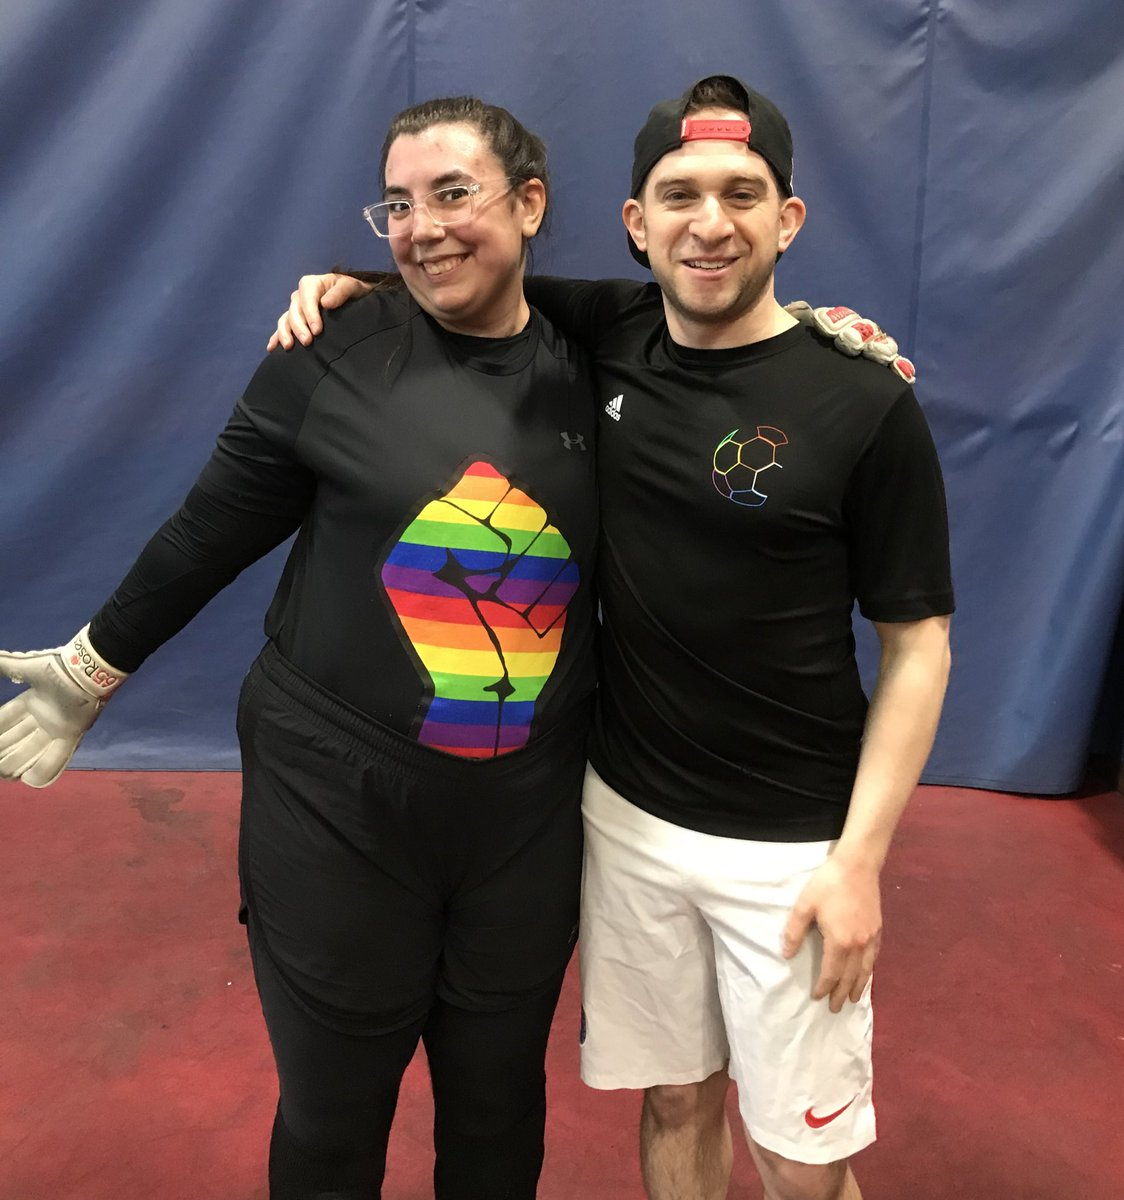 Represented @SFSpikes this weekend at the International Gay Lesbian Football Association World Indoor Championship '20 @TheSCClassic. @BlackAndAzul producer @jasonsholl also reffed. Shannon, our goalie, wore the most legit kit ever. Saw old friends & made new ones! ⚽️🏳️🌈🇲🇽🇨🇦🇺🇸👊